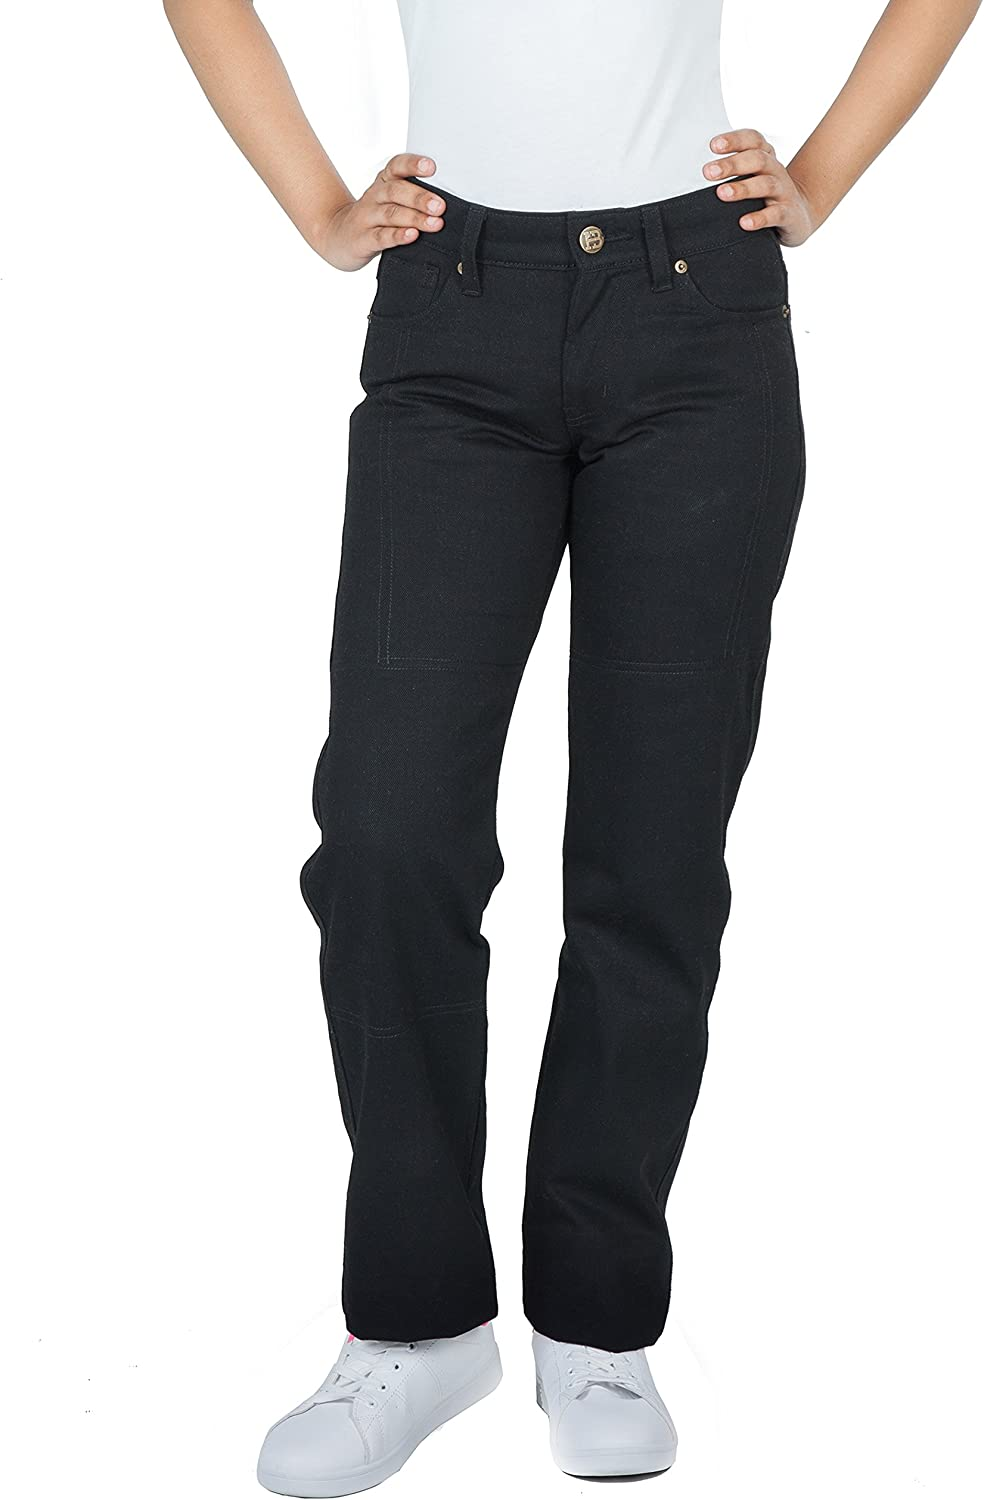 Huxlay Bros HB Ladies Motorcycle Jeans, Aramid Kevlar Reinforced, Straight Fit, Free Predector, Black.